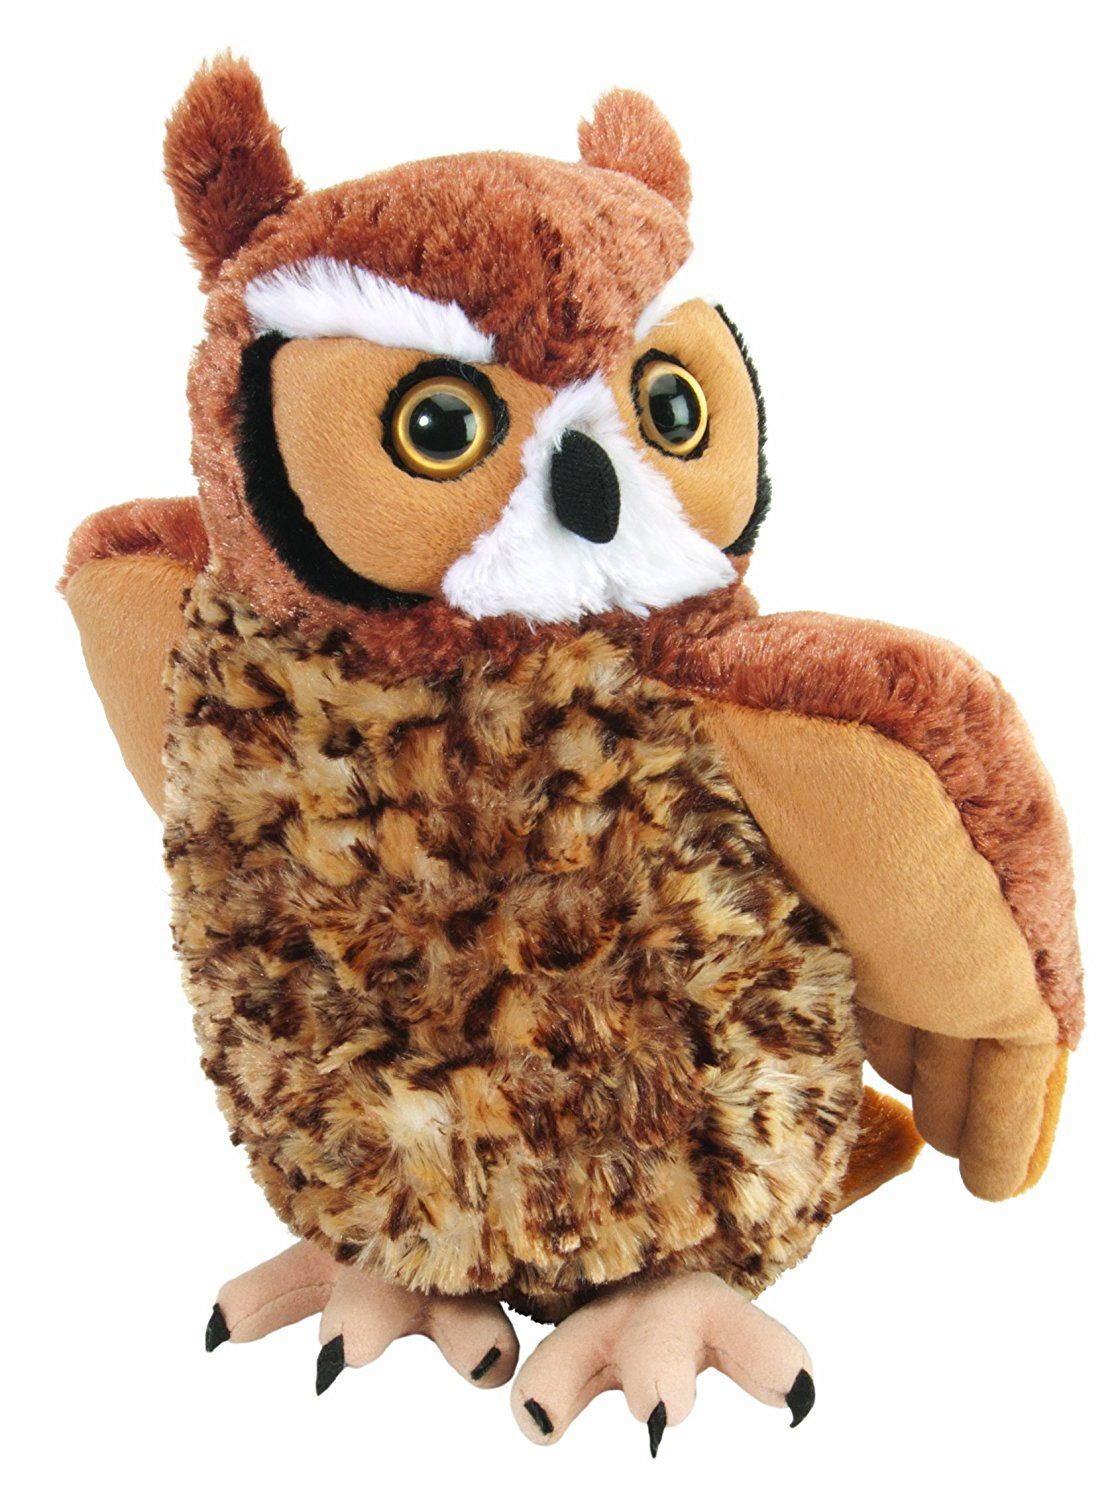 13 Oo To 15 Oo Wild Republic Realistic Owl Stuffie Online Comps